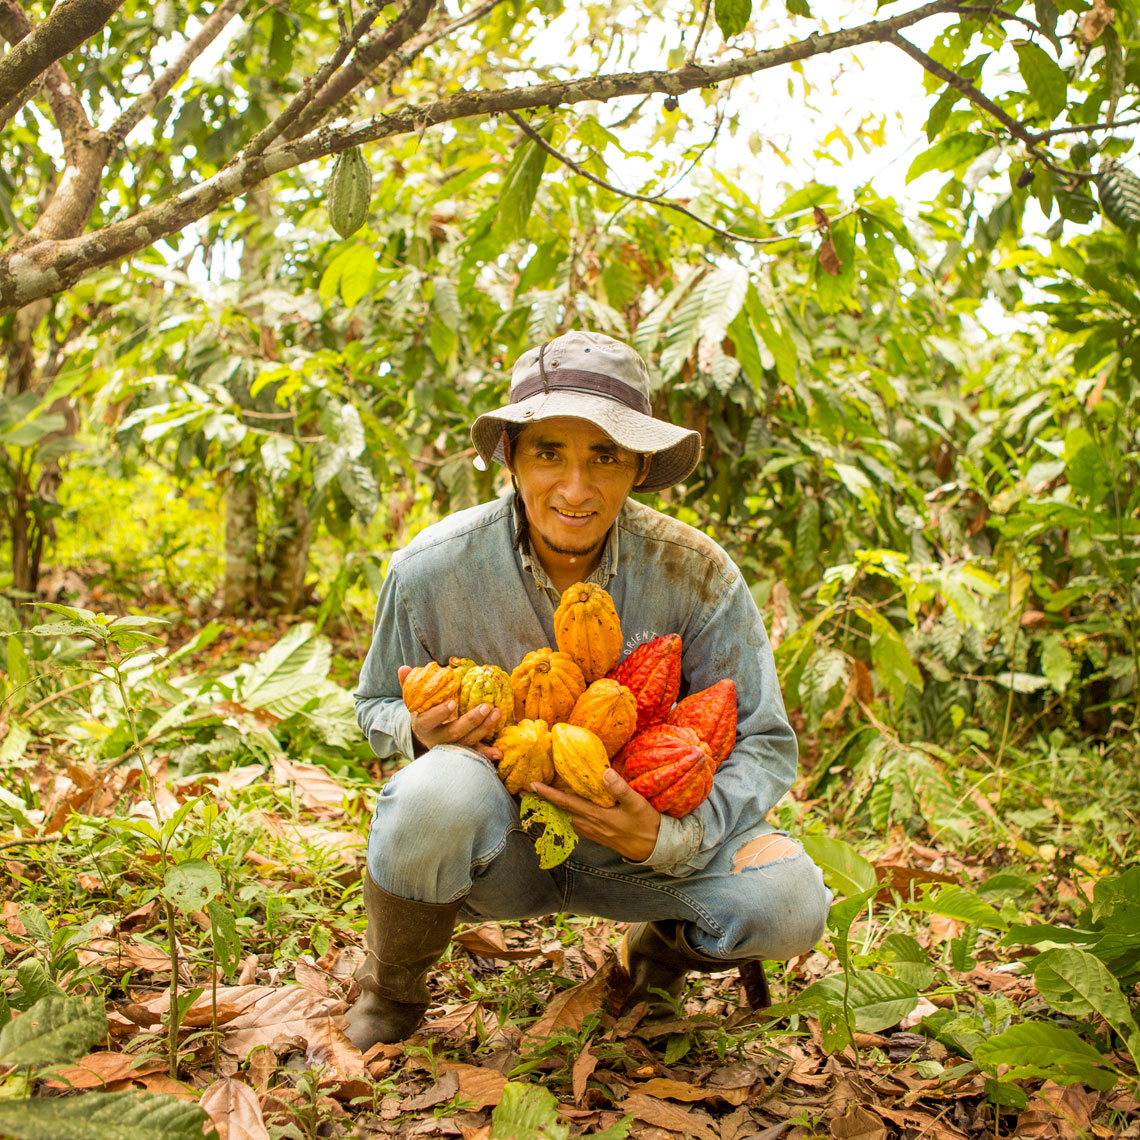 30_Kris_Davidson_National_Geographic_Cacao_Harvest_Man_Ecuador_Amazon